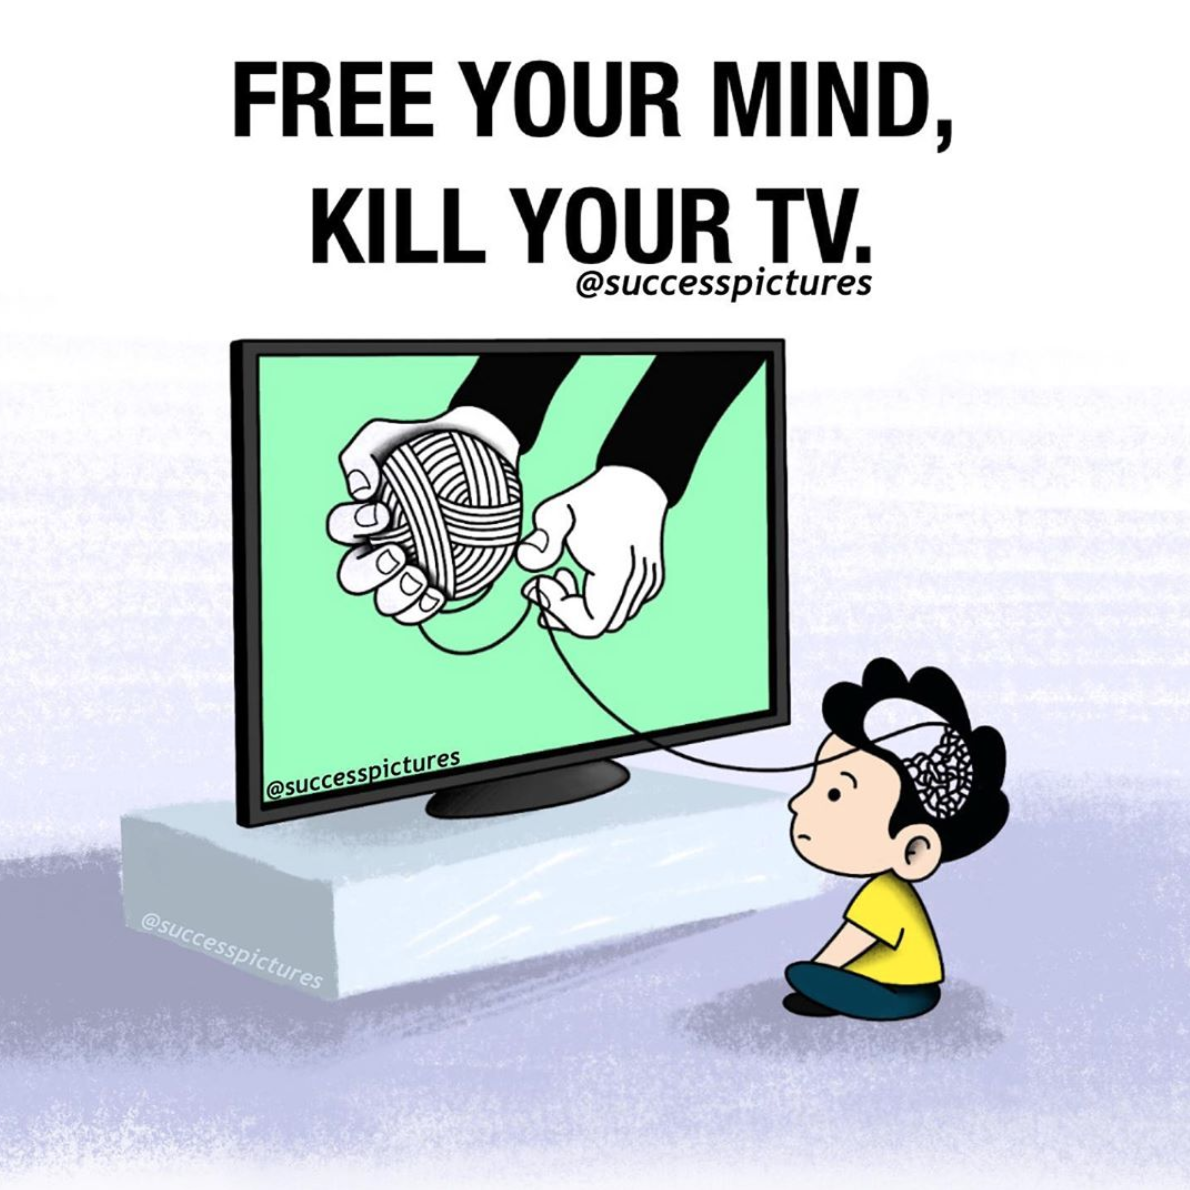 [Image] Free your mind, Kill your TV